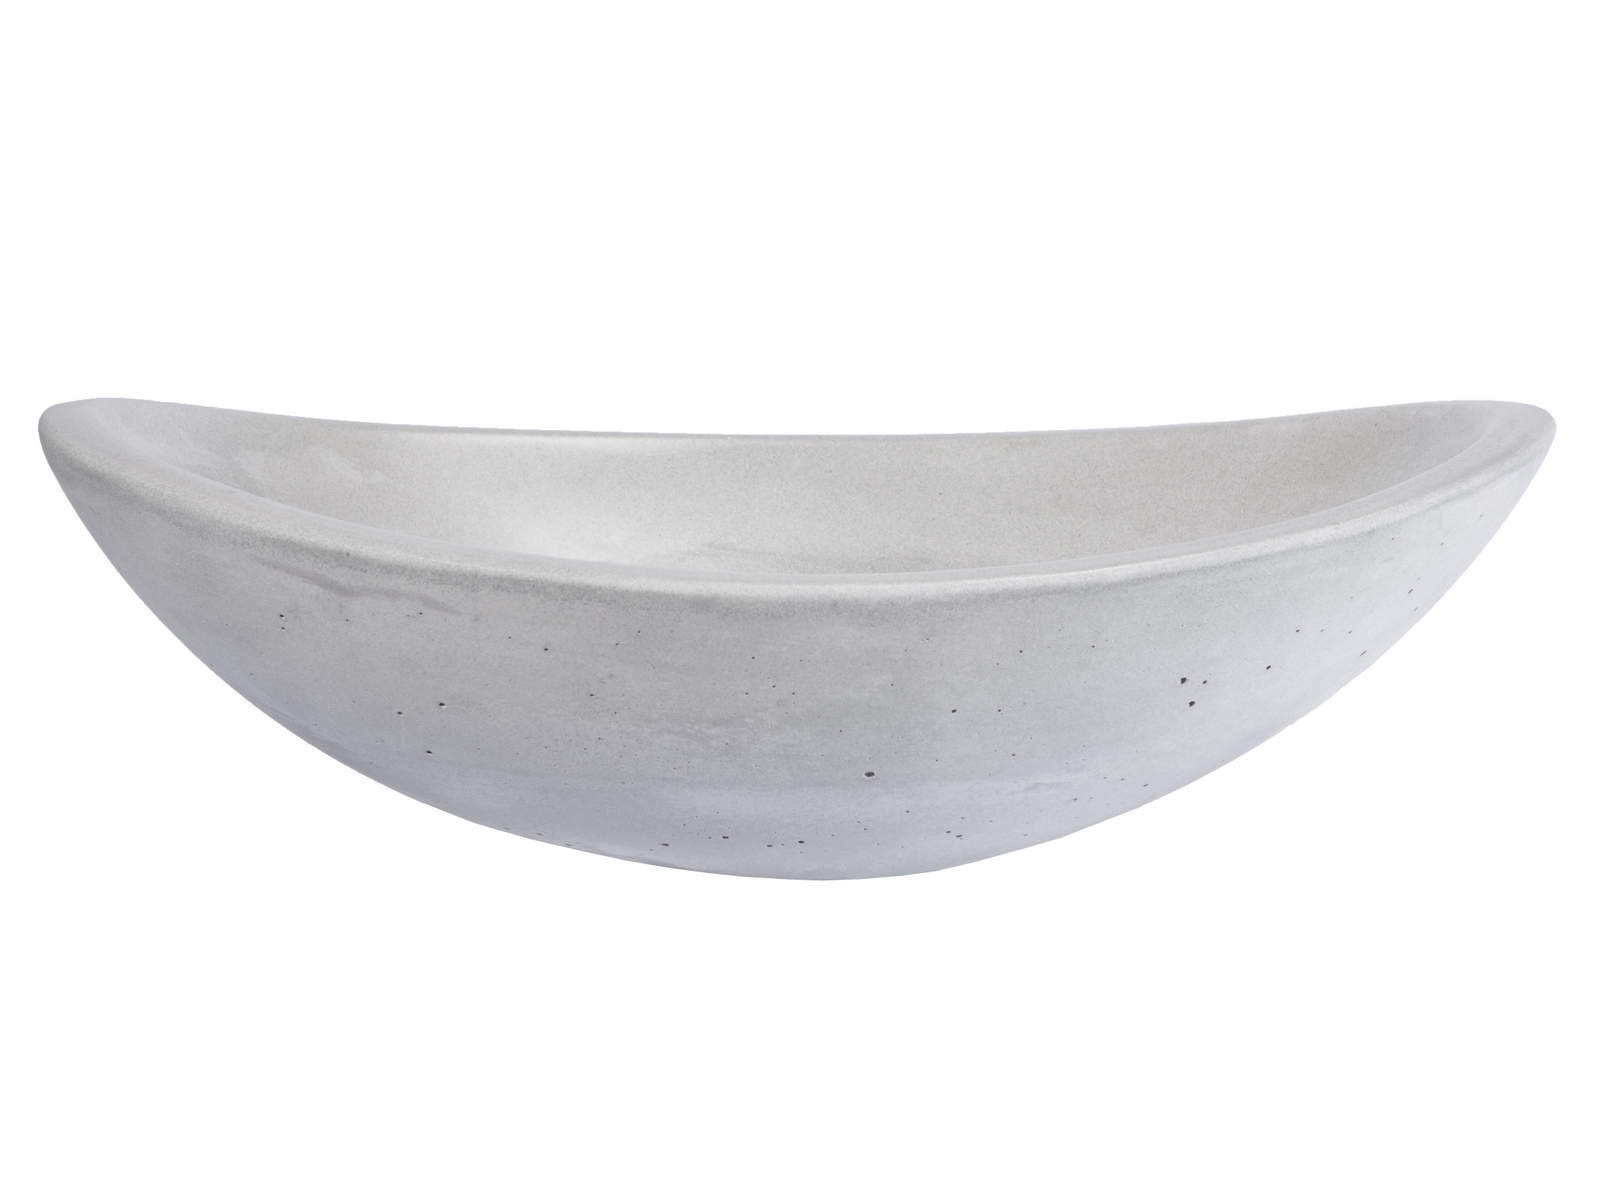 Concrete Vessel Sinks | Natural Vessel Sinks-Concrete Canoe Vessel Sink - Light Gray